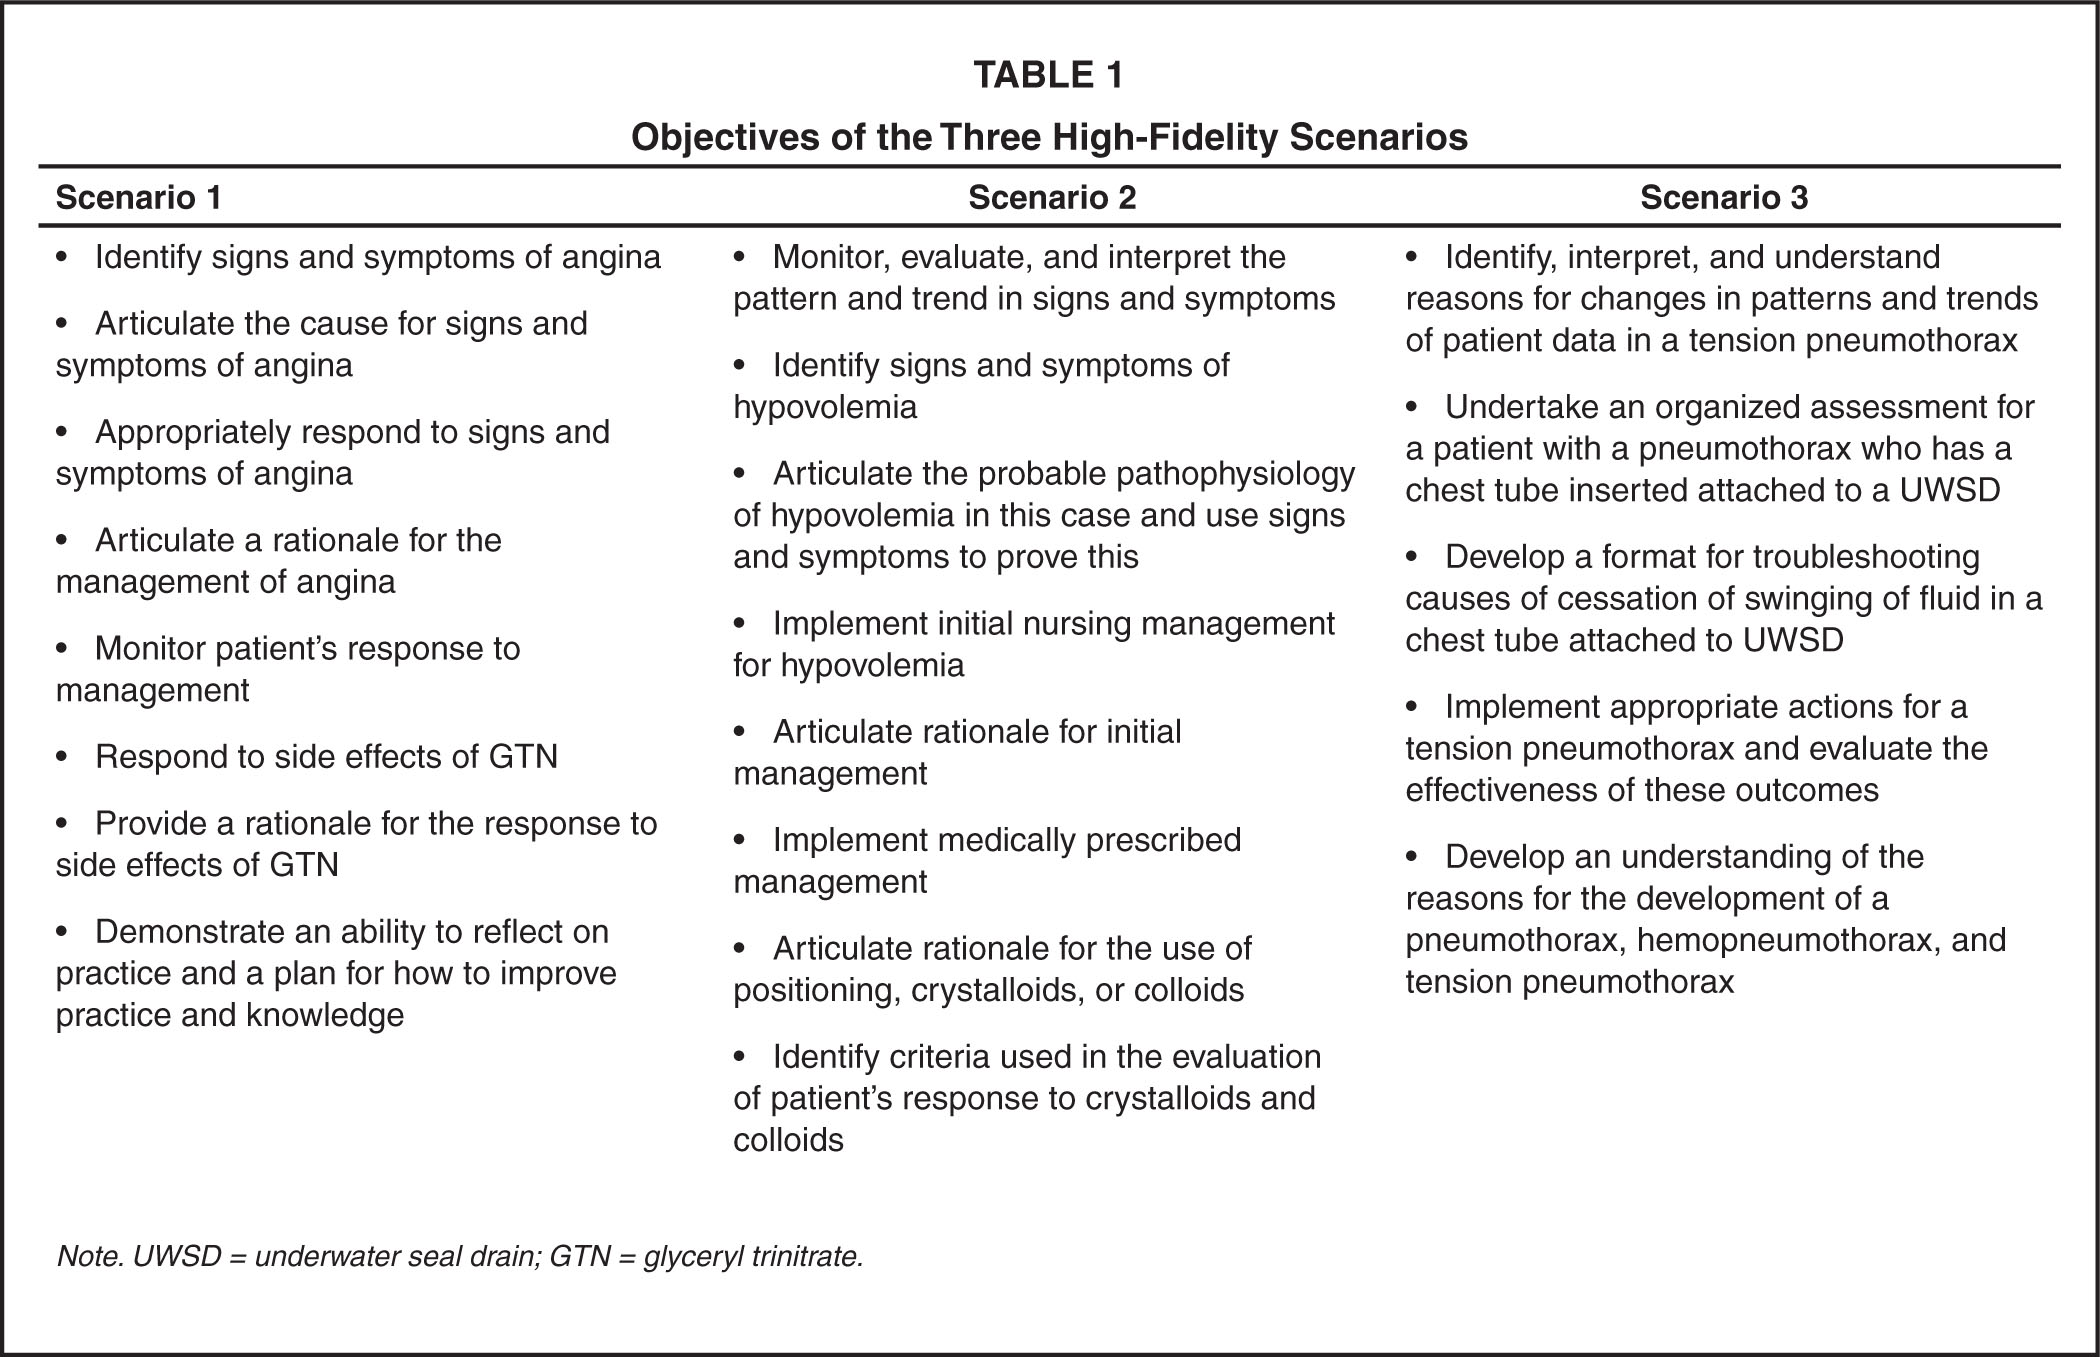 Objectives of the Three High-Fidelity Scenarios